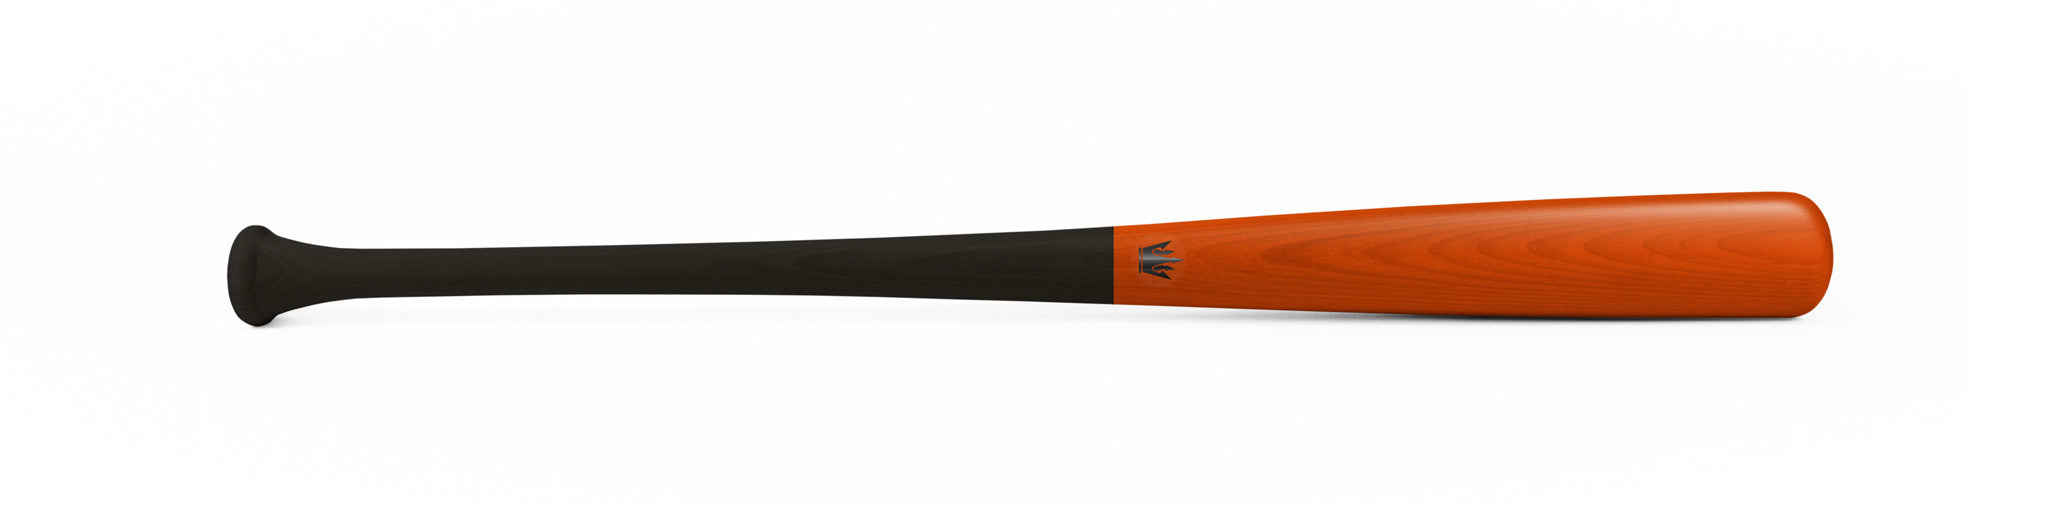 Wood bat - Maple model Y271 Black Orange - 2